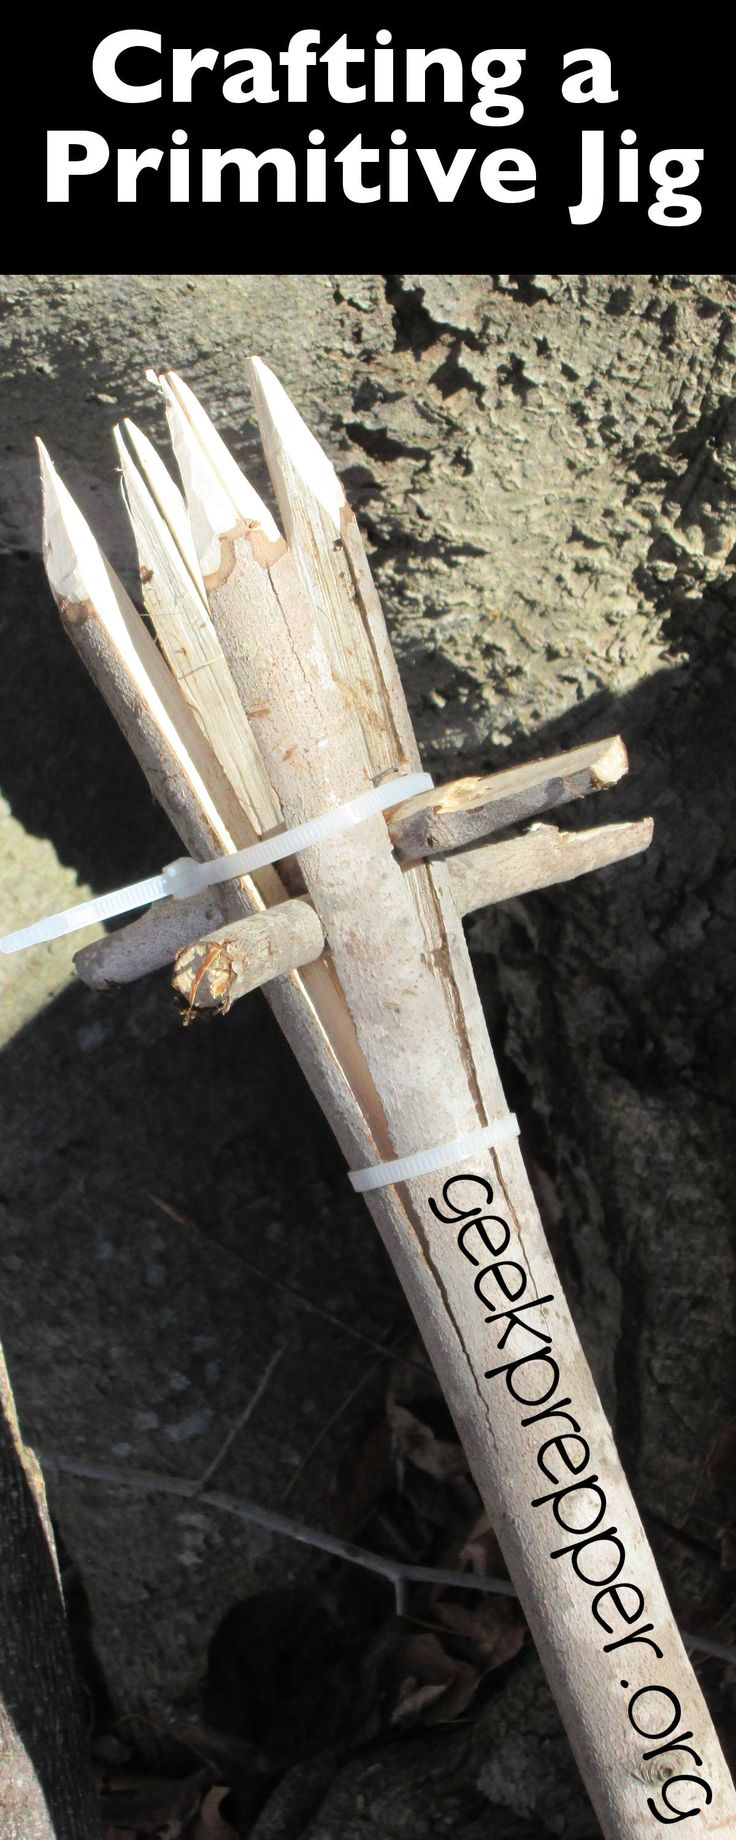 Making a Primitive Gig is a simple process that all should know. A Primitive Gig will allow you to spear small game both in water and on dry land. geekprepper.org